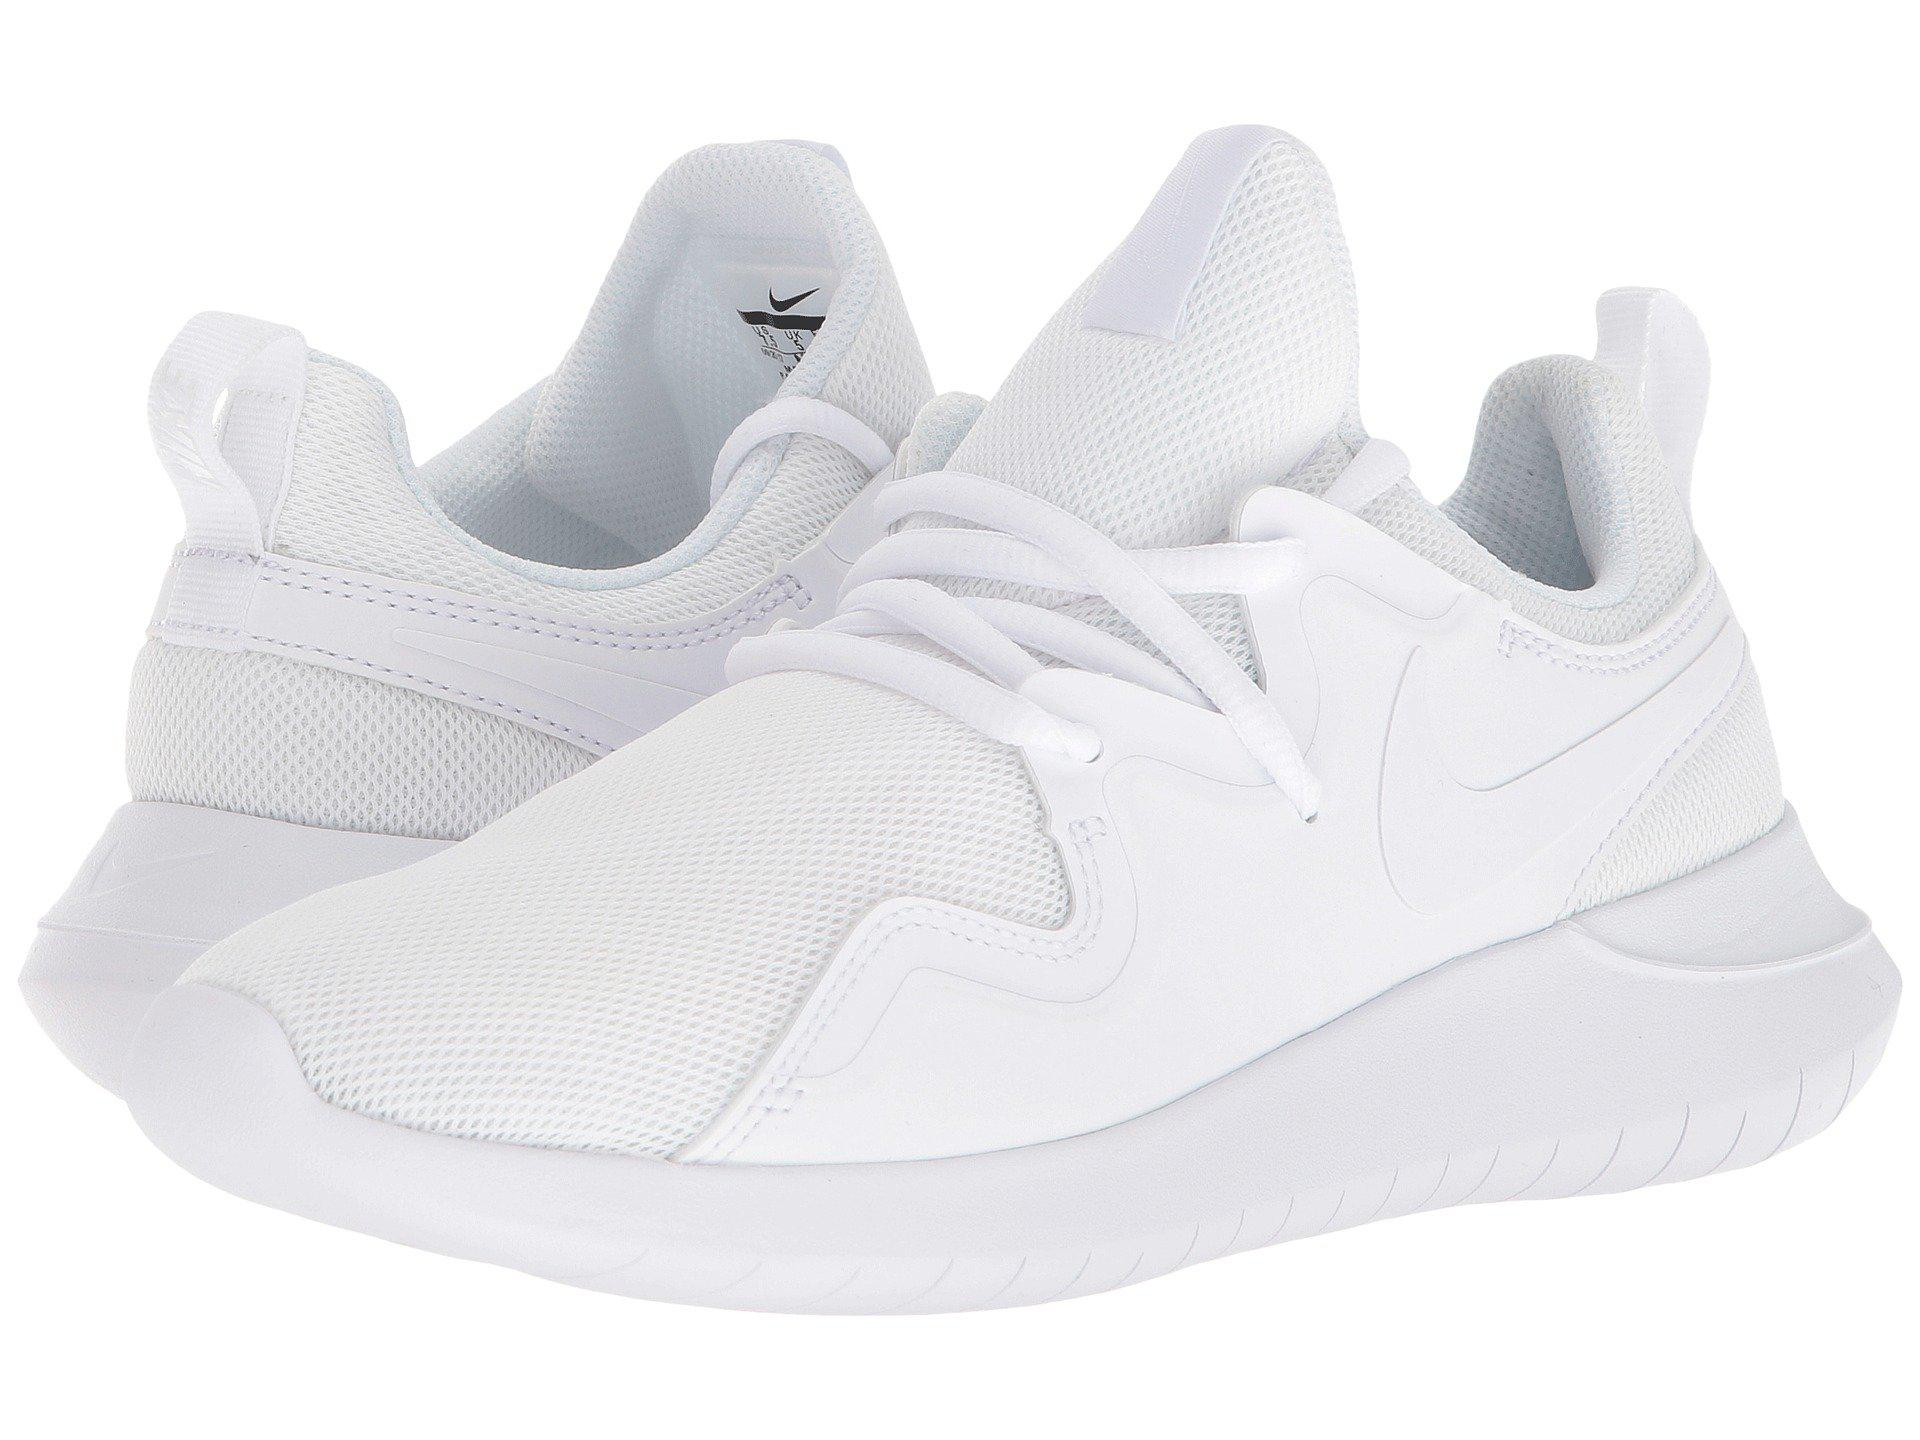 9e6328f4a9be2 Lyst - Nike Tessen Running Shoe in White - Save 50%